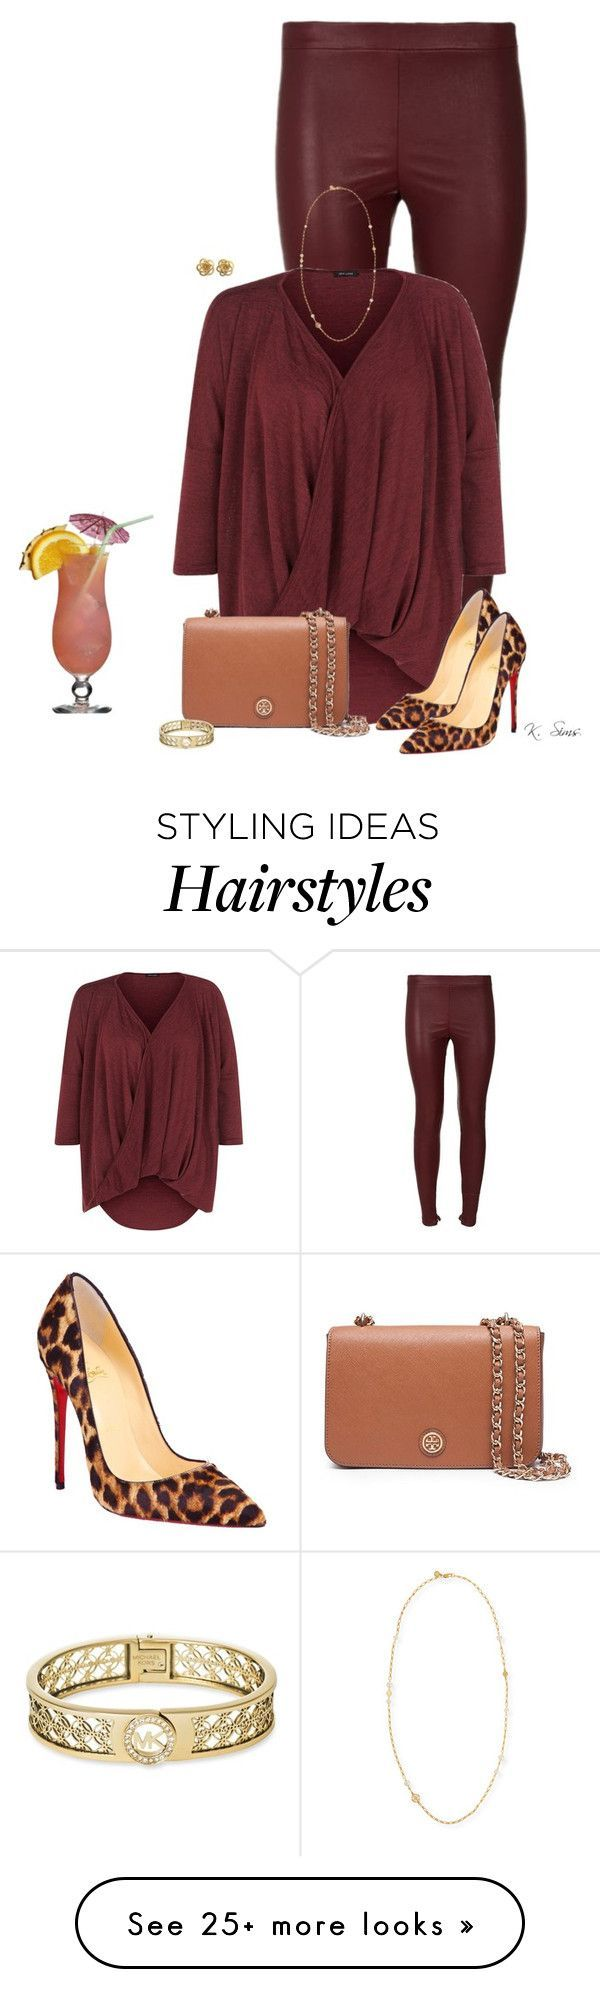 """""""Drinks, anyone?"""" by ksims-1 on Polyvore featuring Vince, Christian Louboutin, Tory Burch and Michael Kors"""